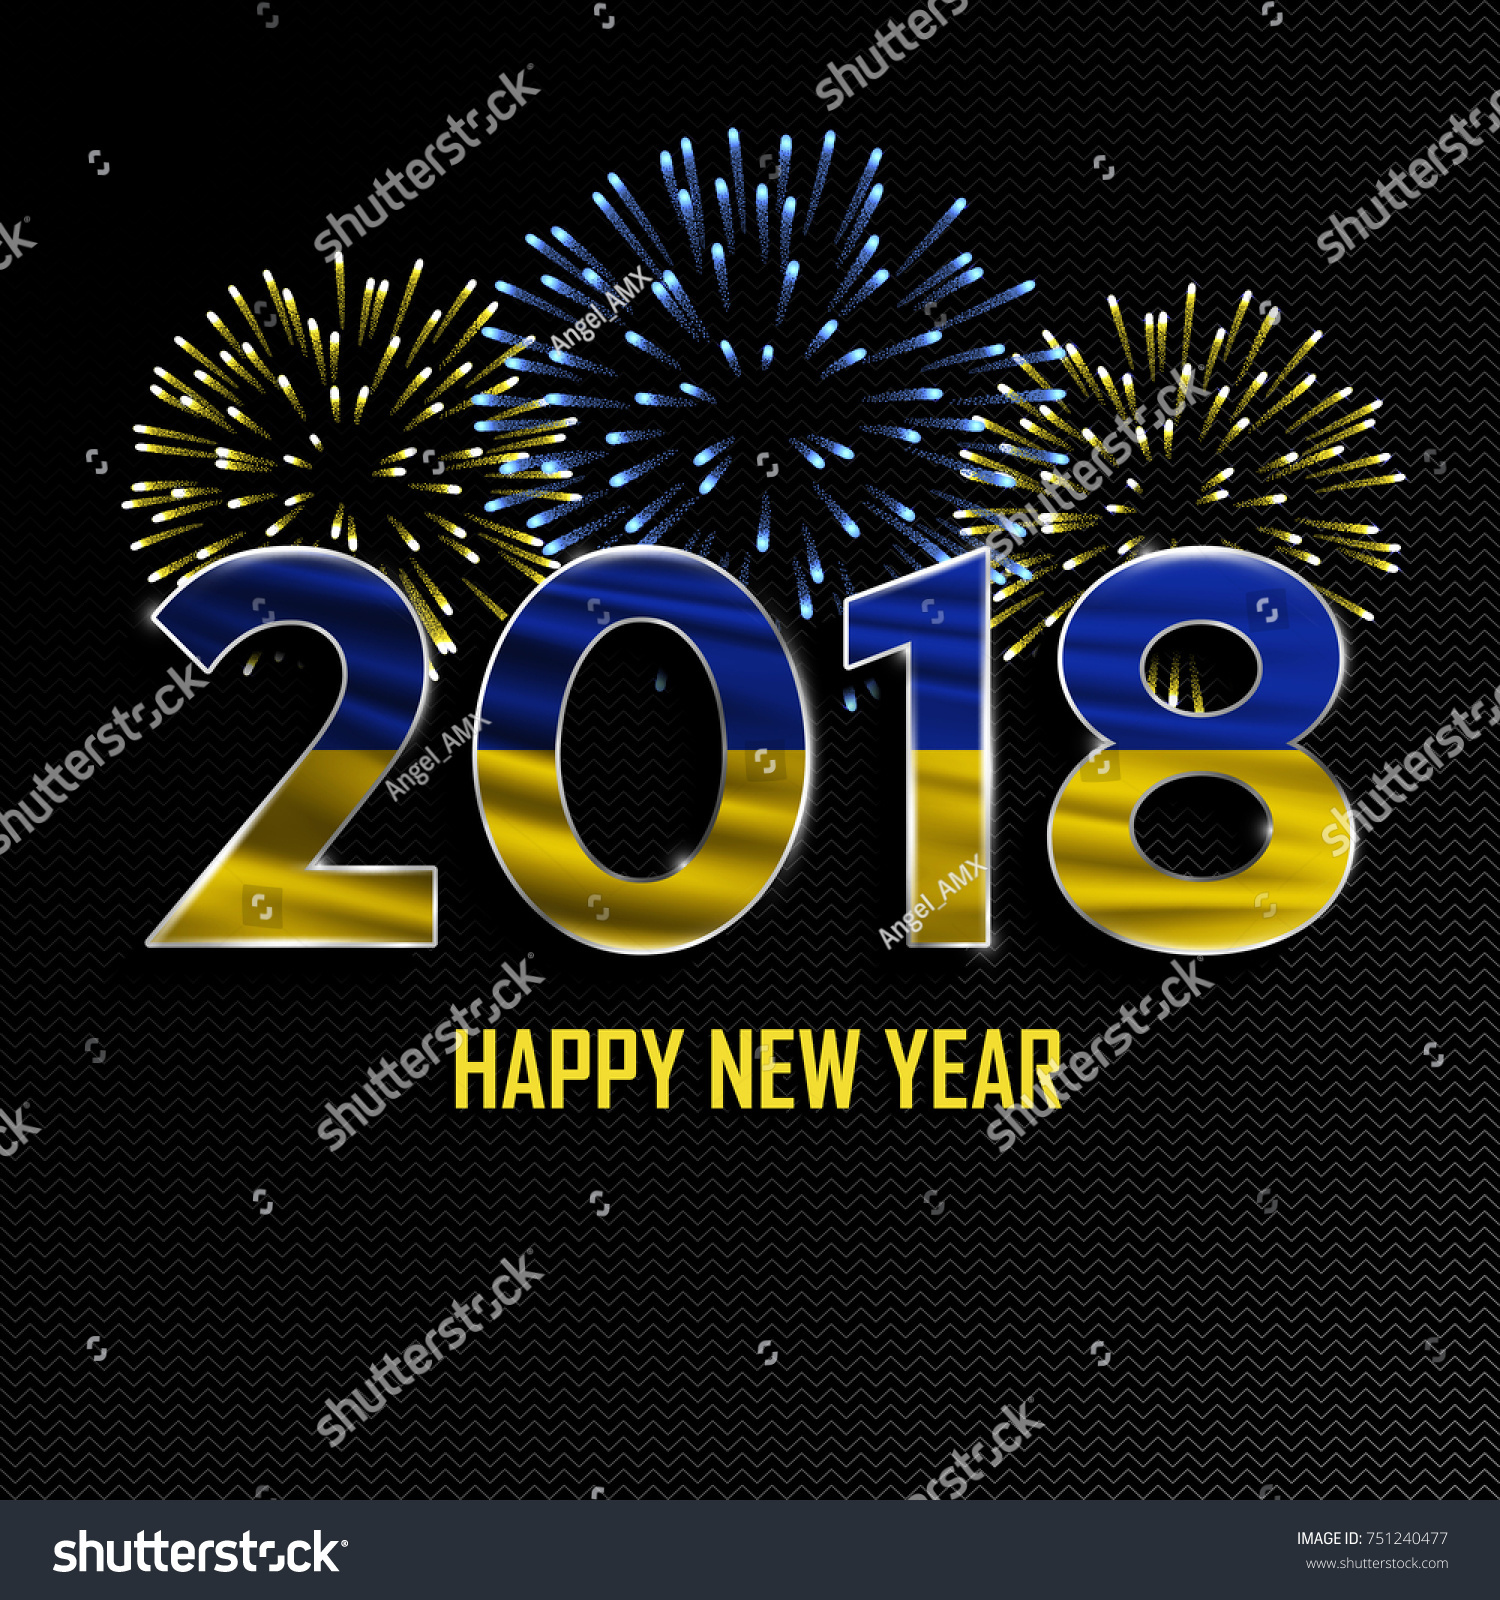 happy new year and merry christmas 2018 new year background with national flag of ukraine